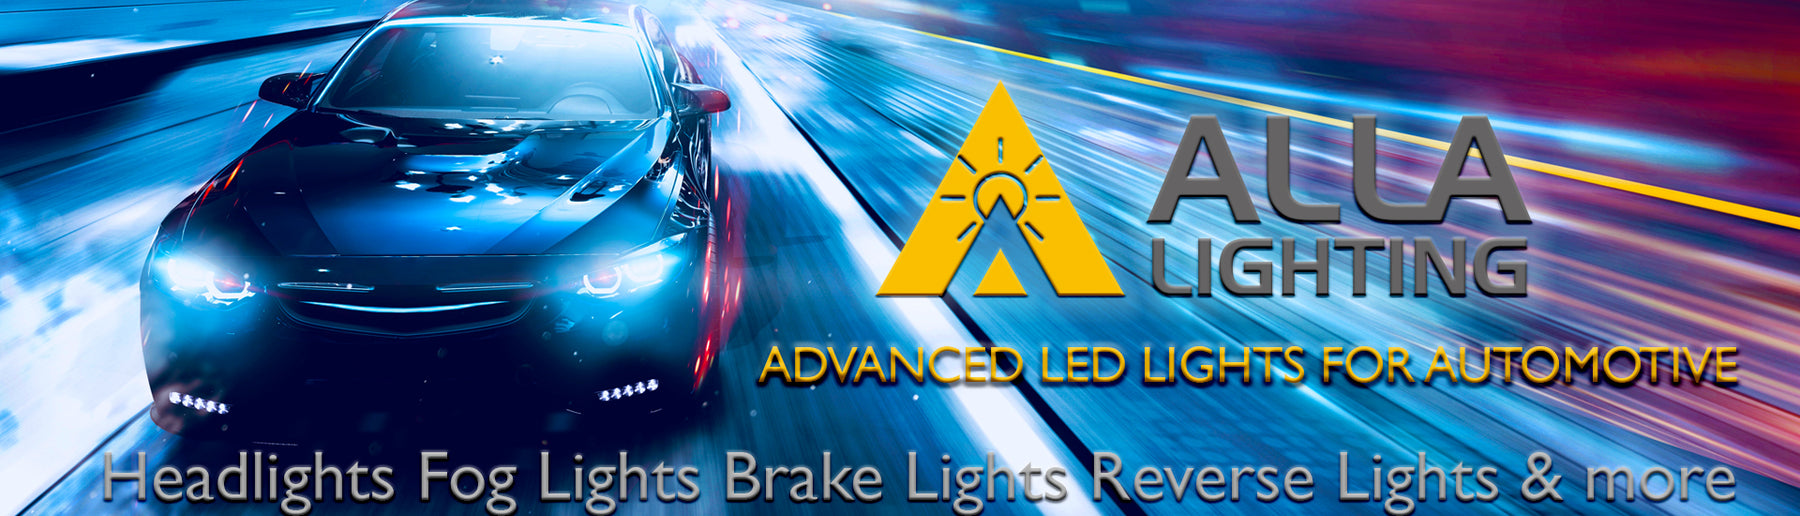 Upgrade Your Headlight to LEDs